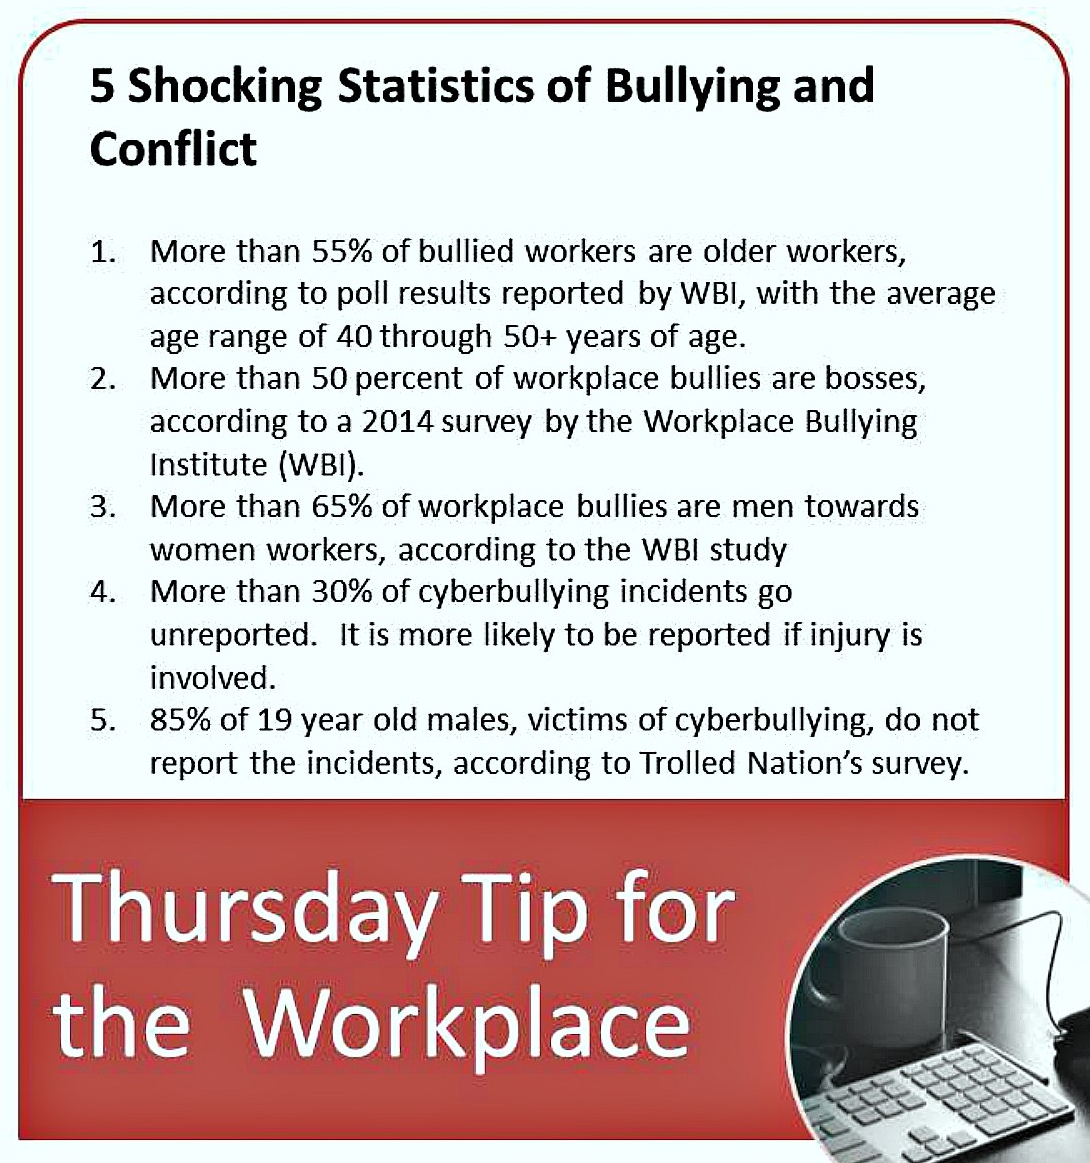 BPost -Thursday Tip for the Workplace 08-27-15